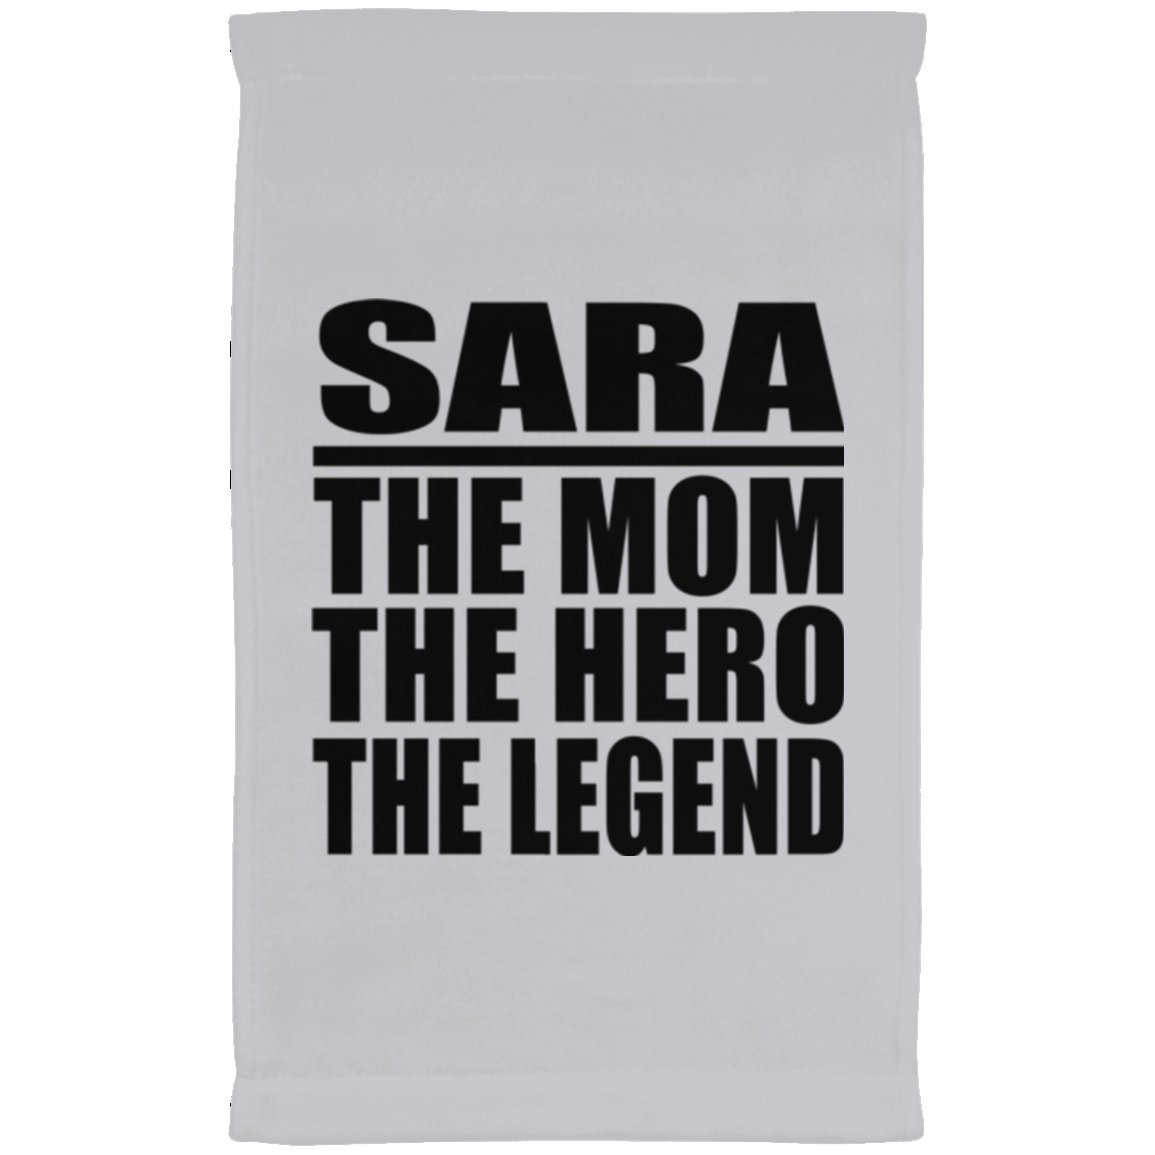 Designsify Mom Towel, Sara The Mom The Hero The Legend - Kitchen Towel, Microfiber Velour Towel, Best Gift with Her Name for Mother, Mum, Parent, Wife from Daughter, Son, Kid, Child, Husband